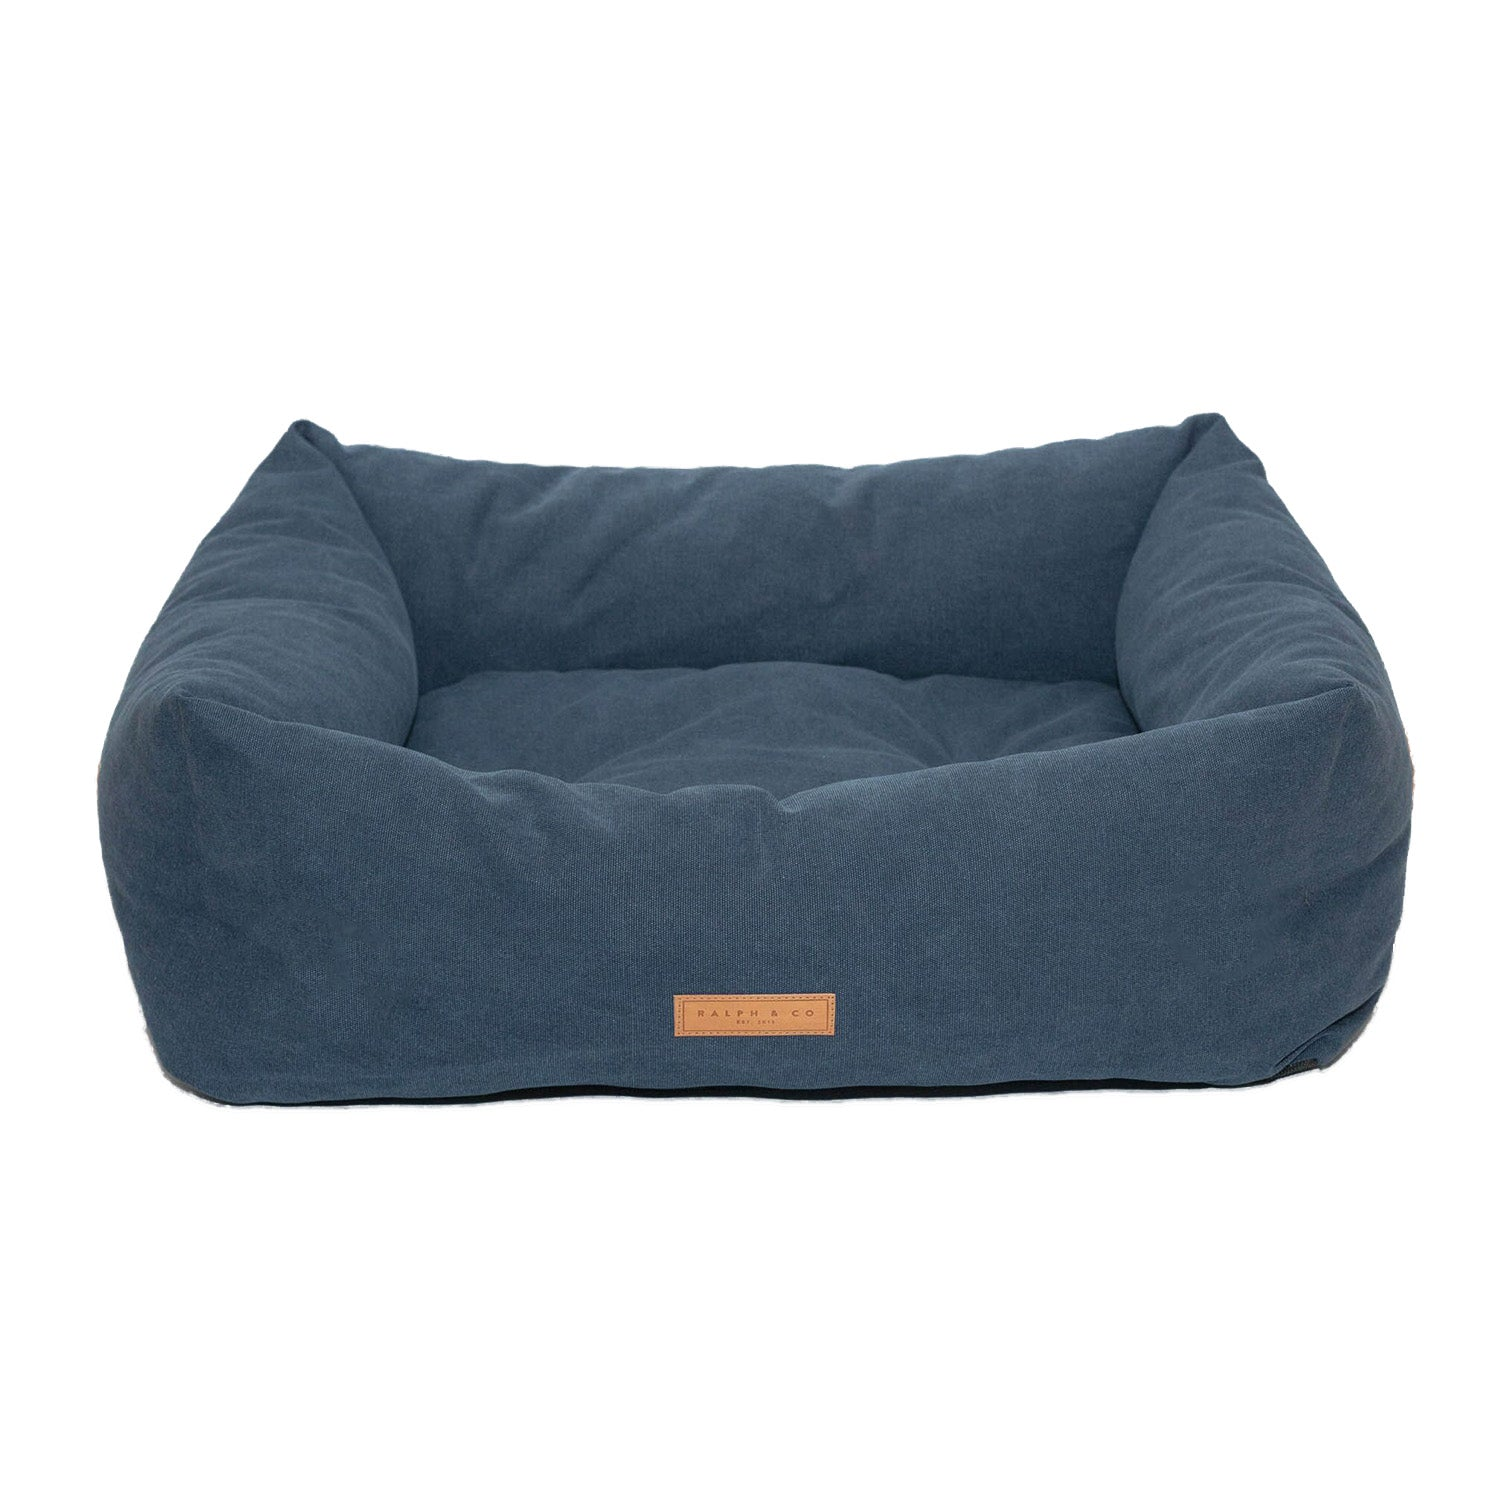 Ralph & Co Nest Bed Stonewashed Fabric Kensington Royal Blue